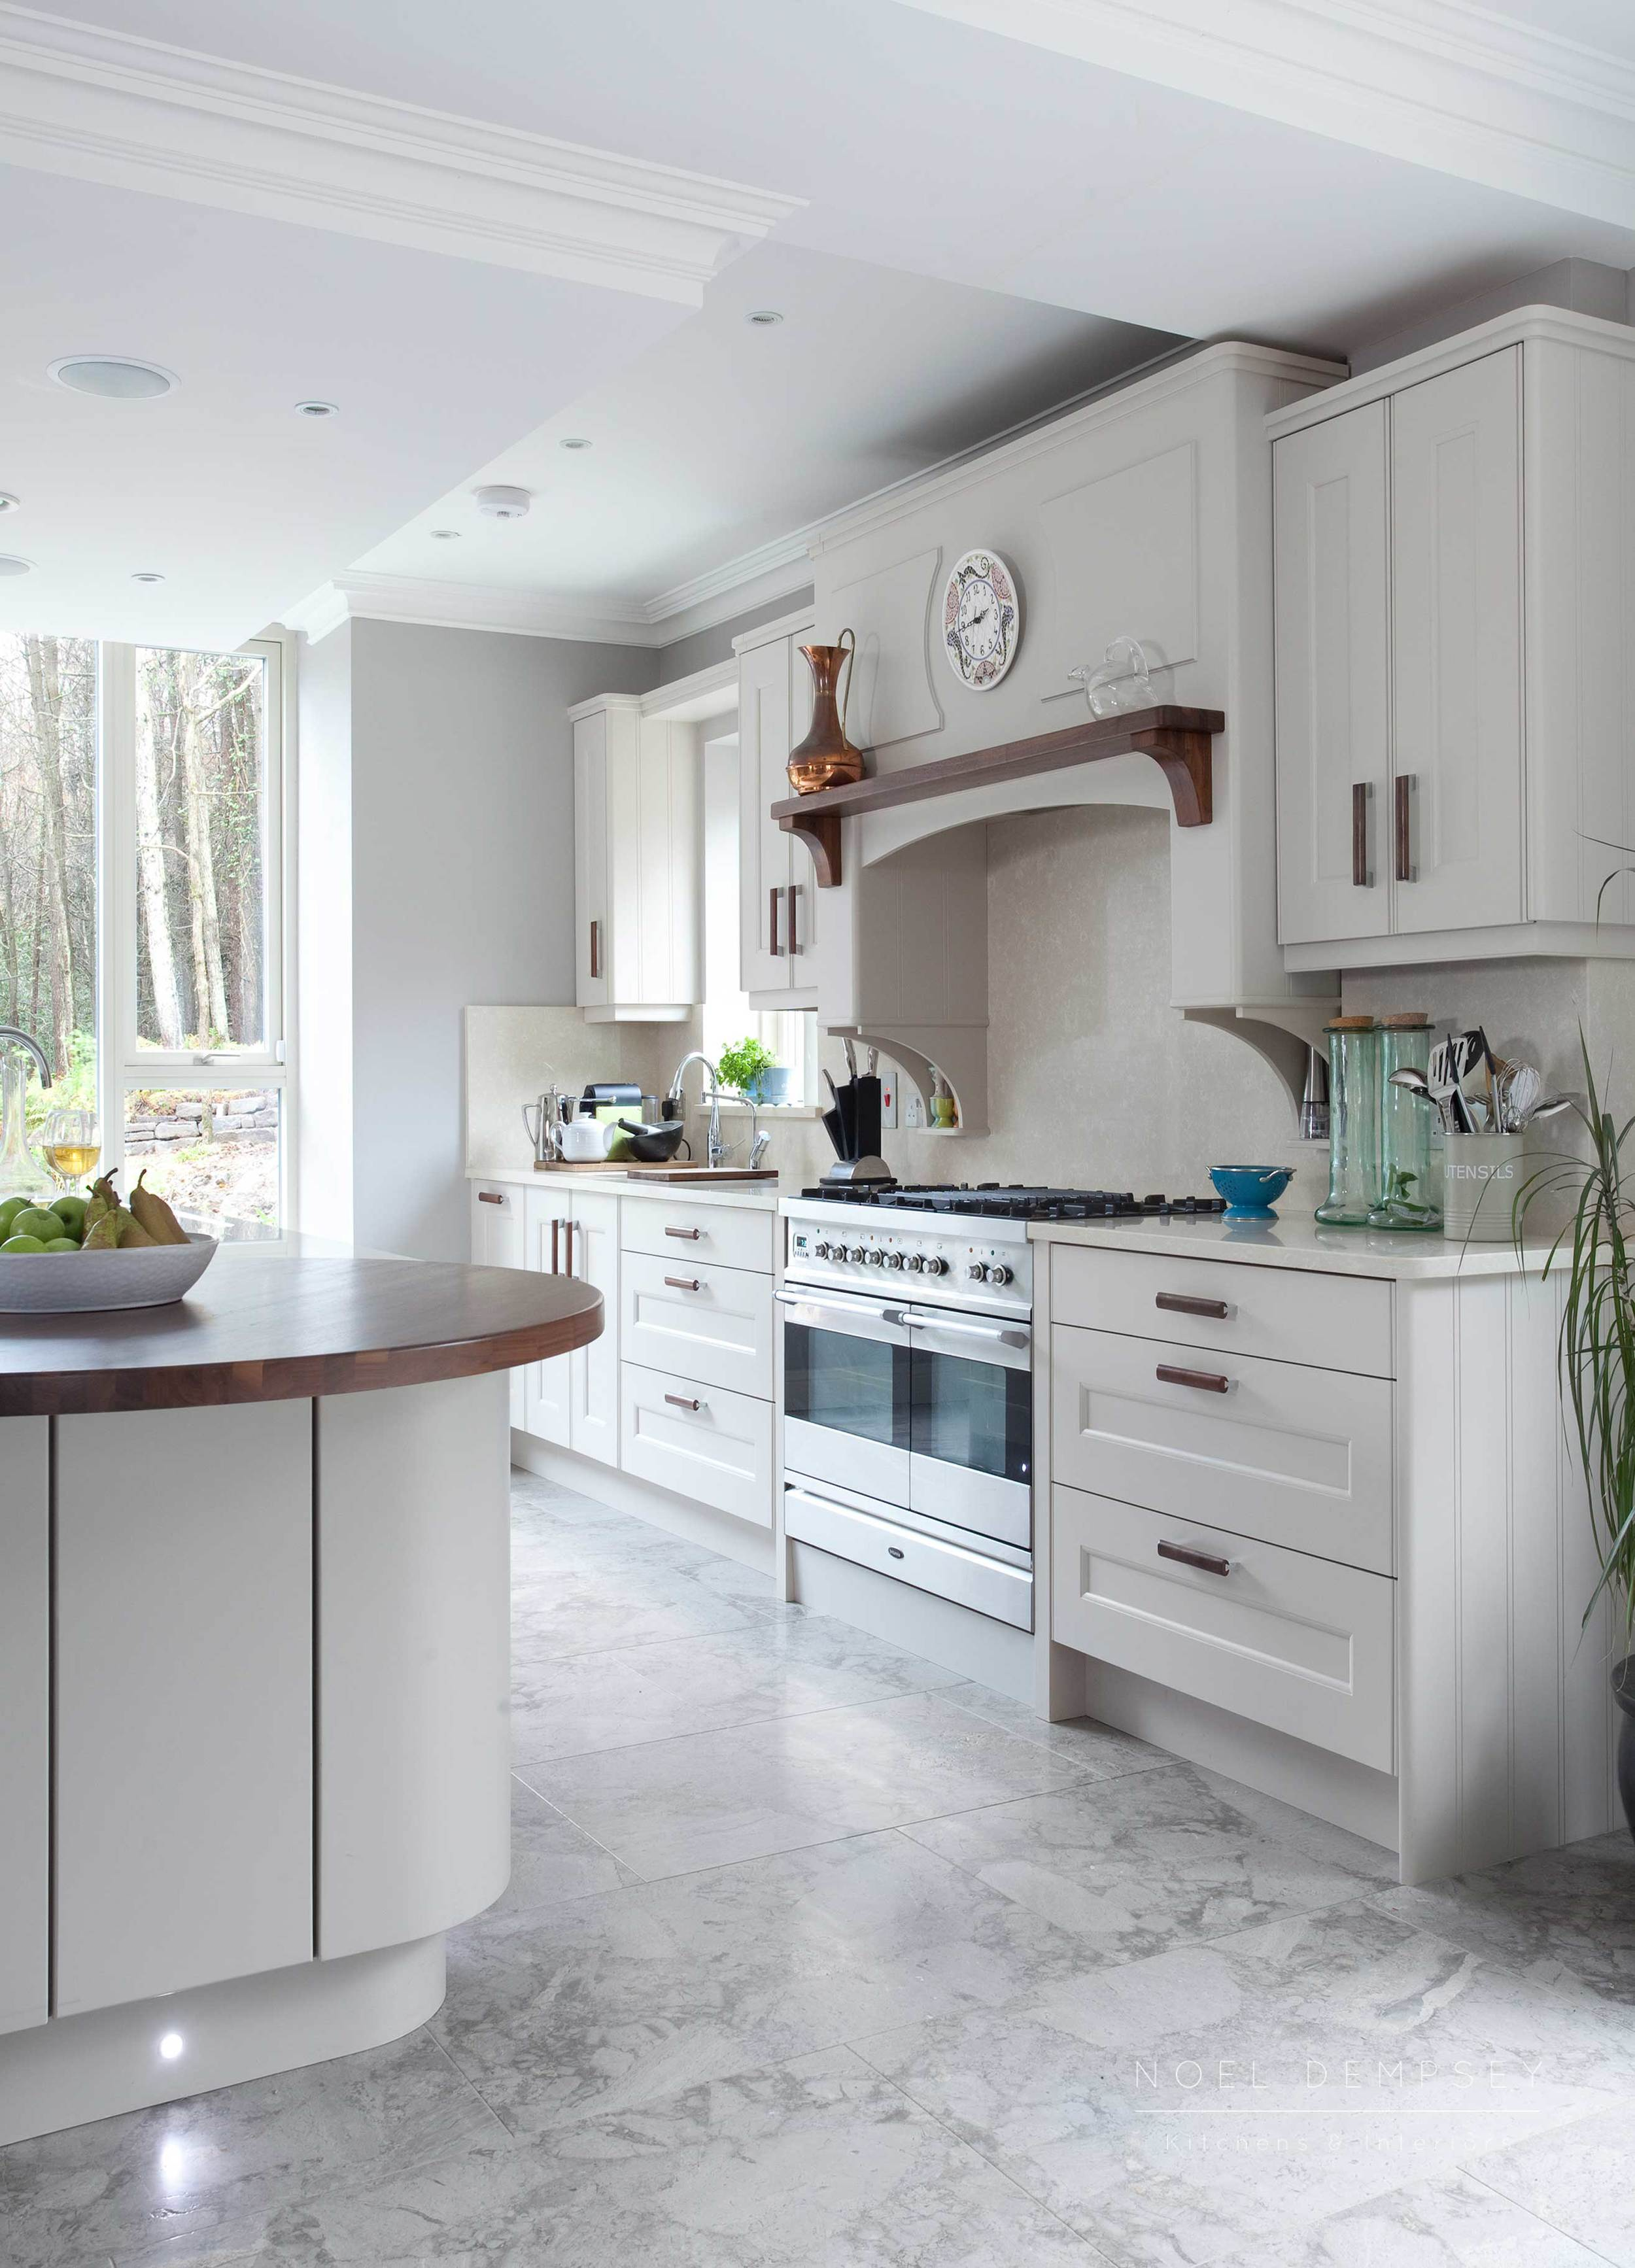 Greenview-painted-kitchens-wicklow-4.jpg